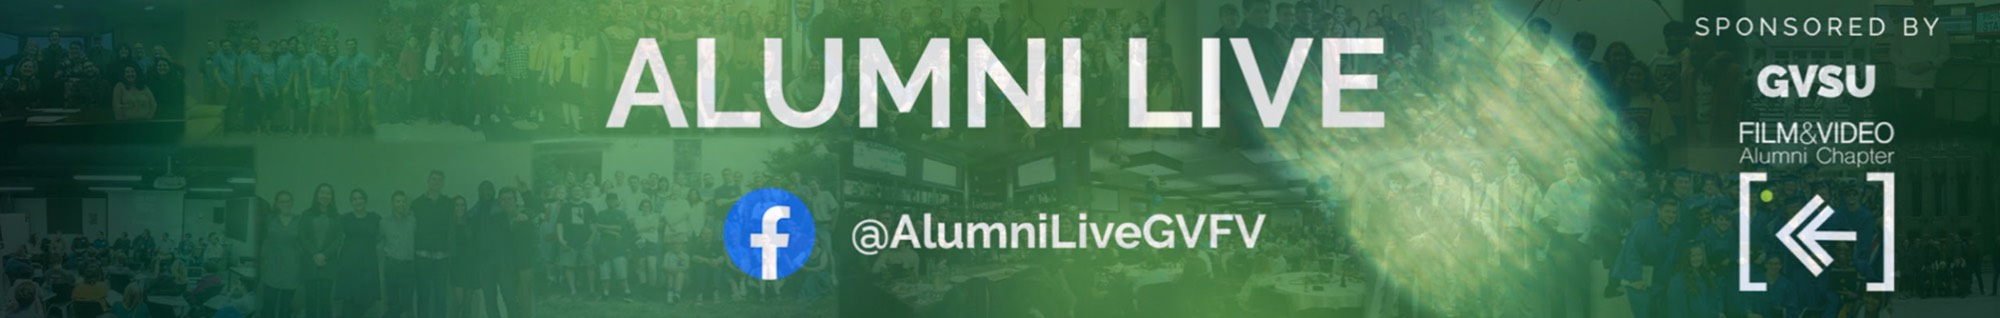 Alumni live Events logo